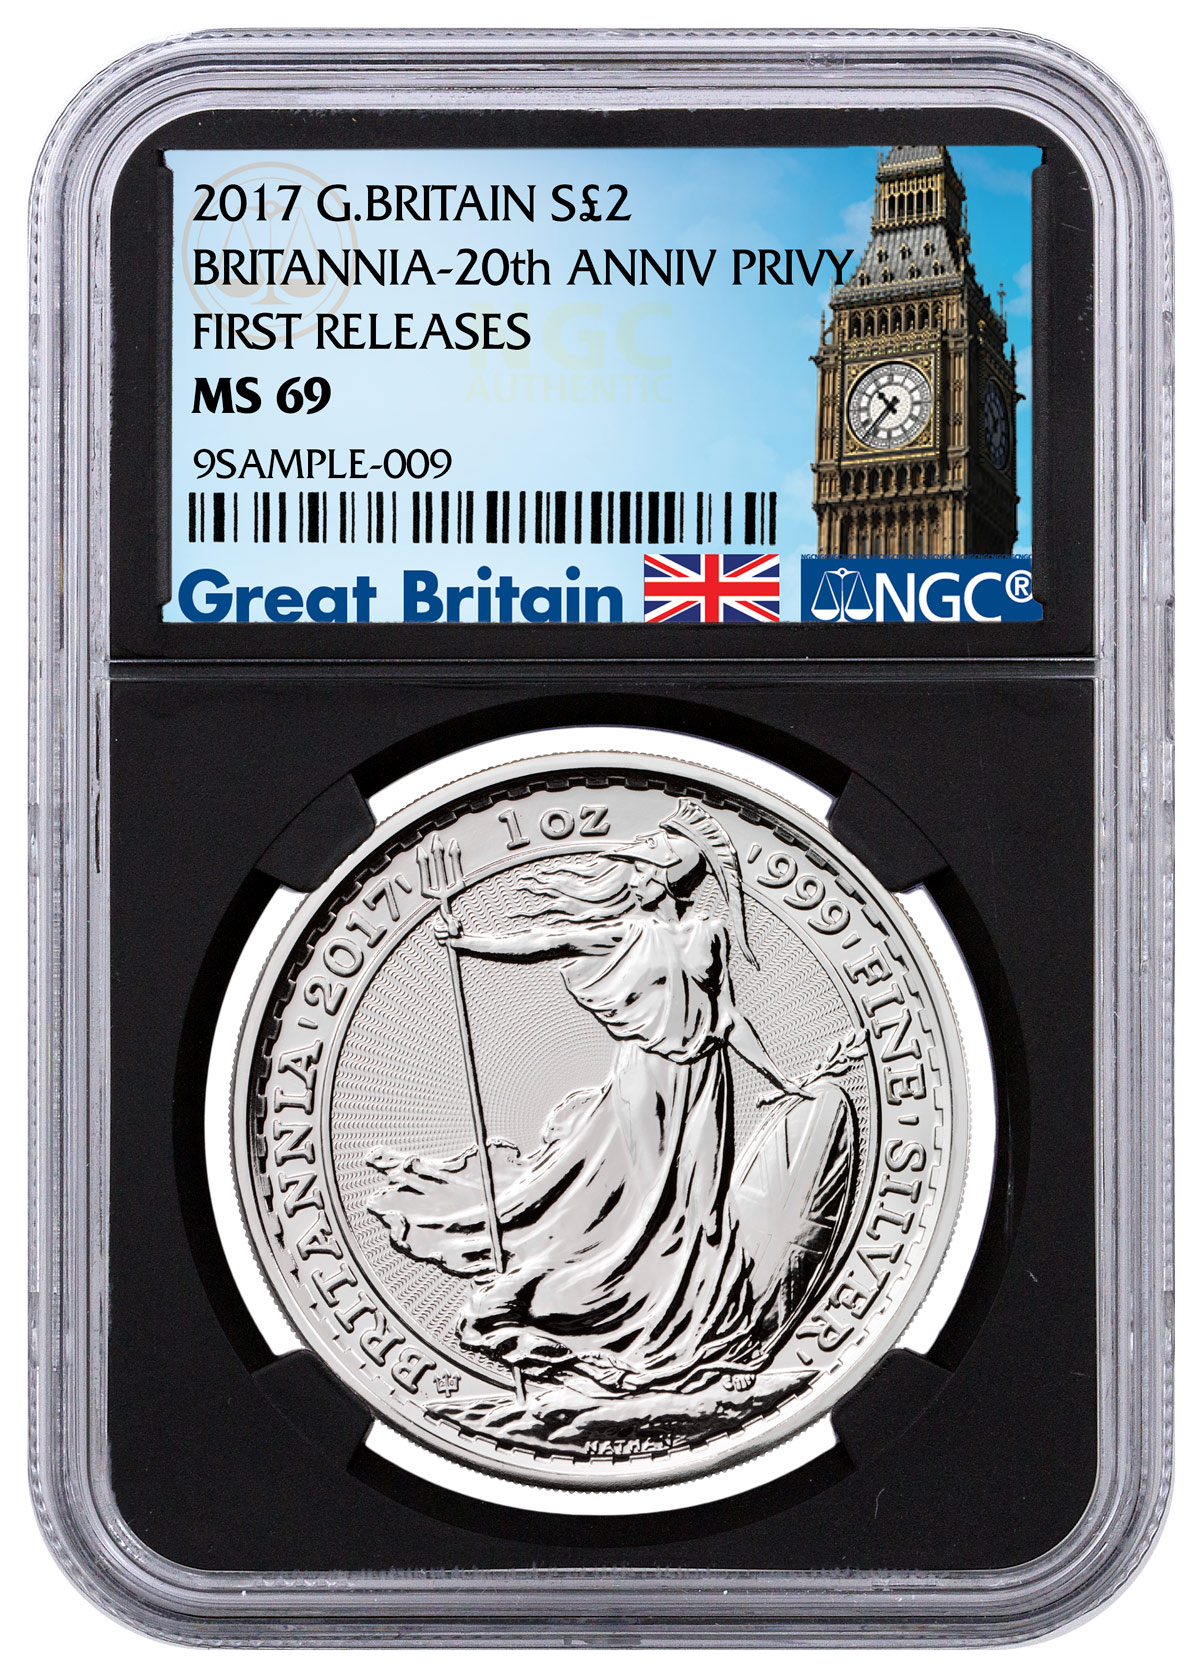 2017 Great Britain 1 oz Silver Britannia - 20th Anniversary Trident Privy £2 Coin NGC MS69 FR (Black Core Holder - Exclusive Great Britain Label)